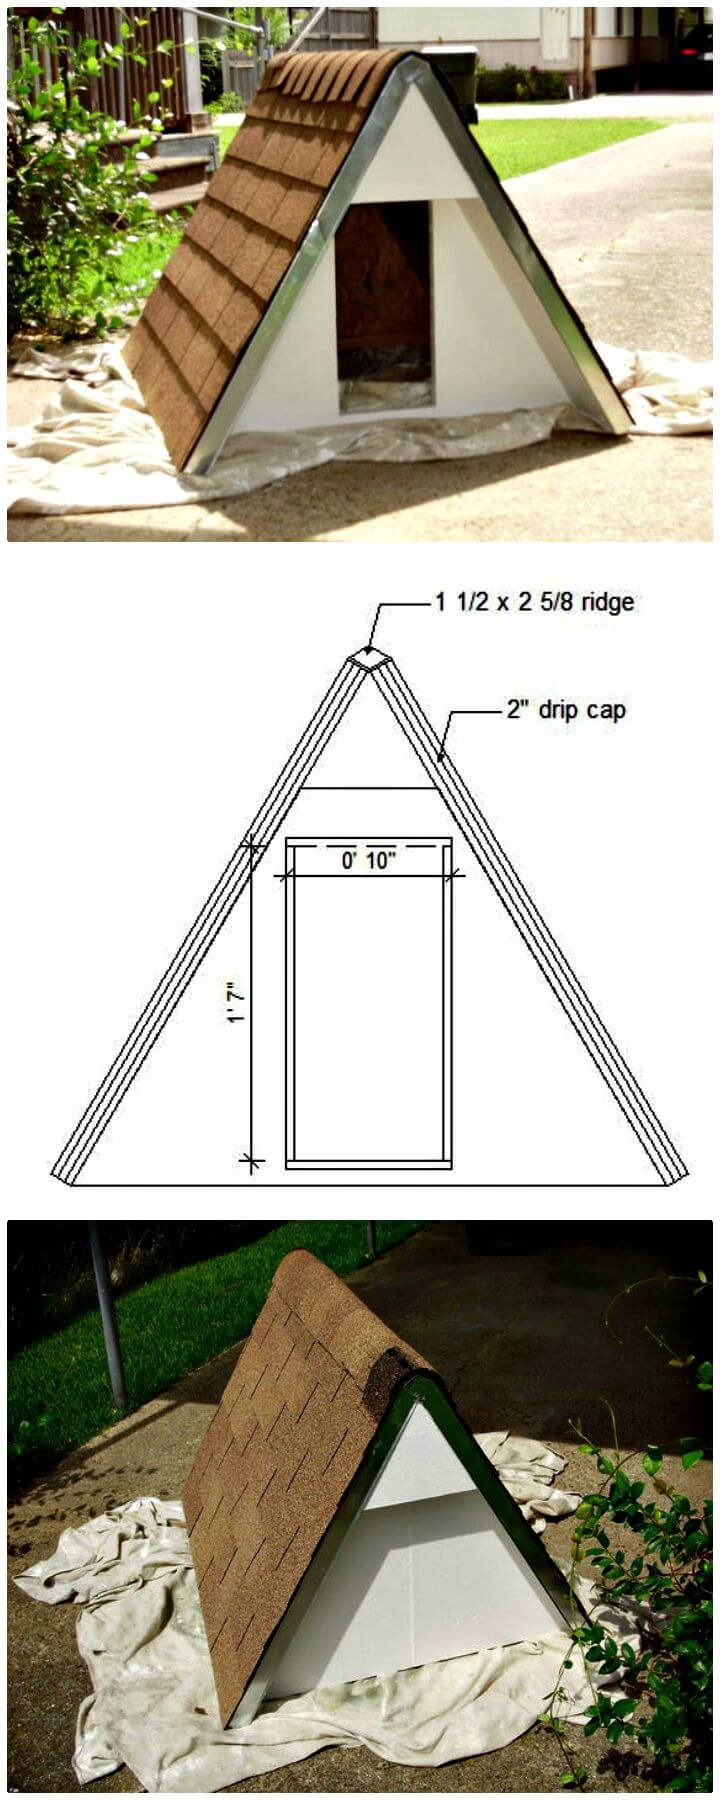 Building Plans for Dog House Fresh 45 Easy Diy Dog House Plans & Ideas You Should Build This